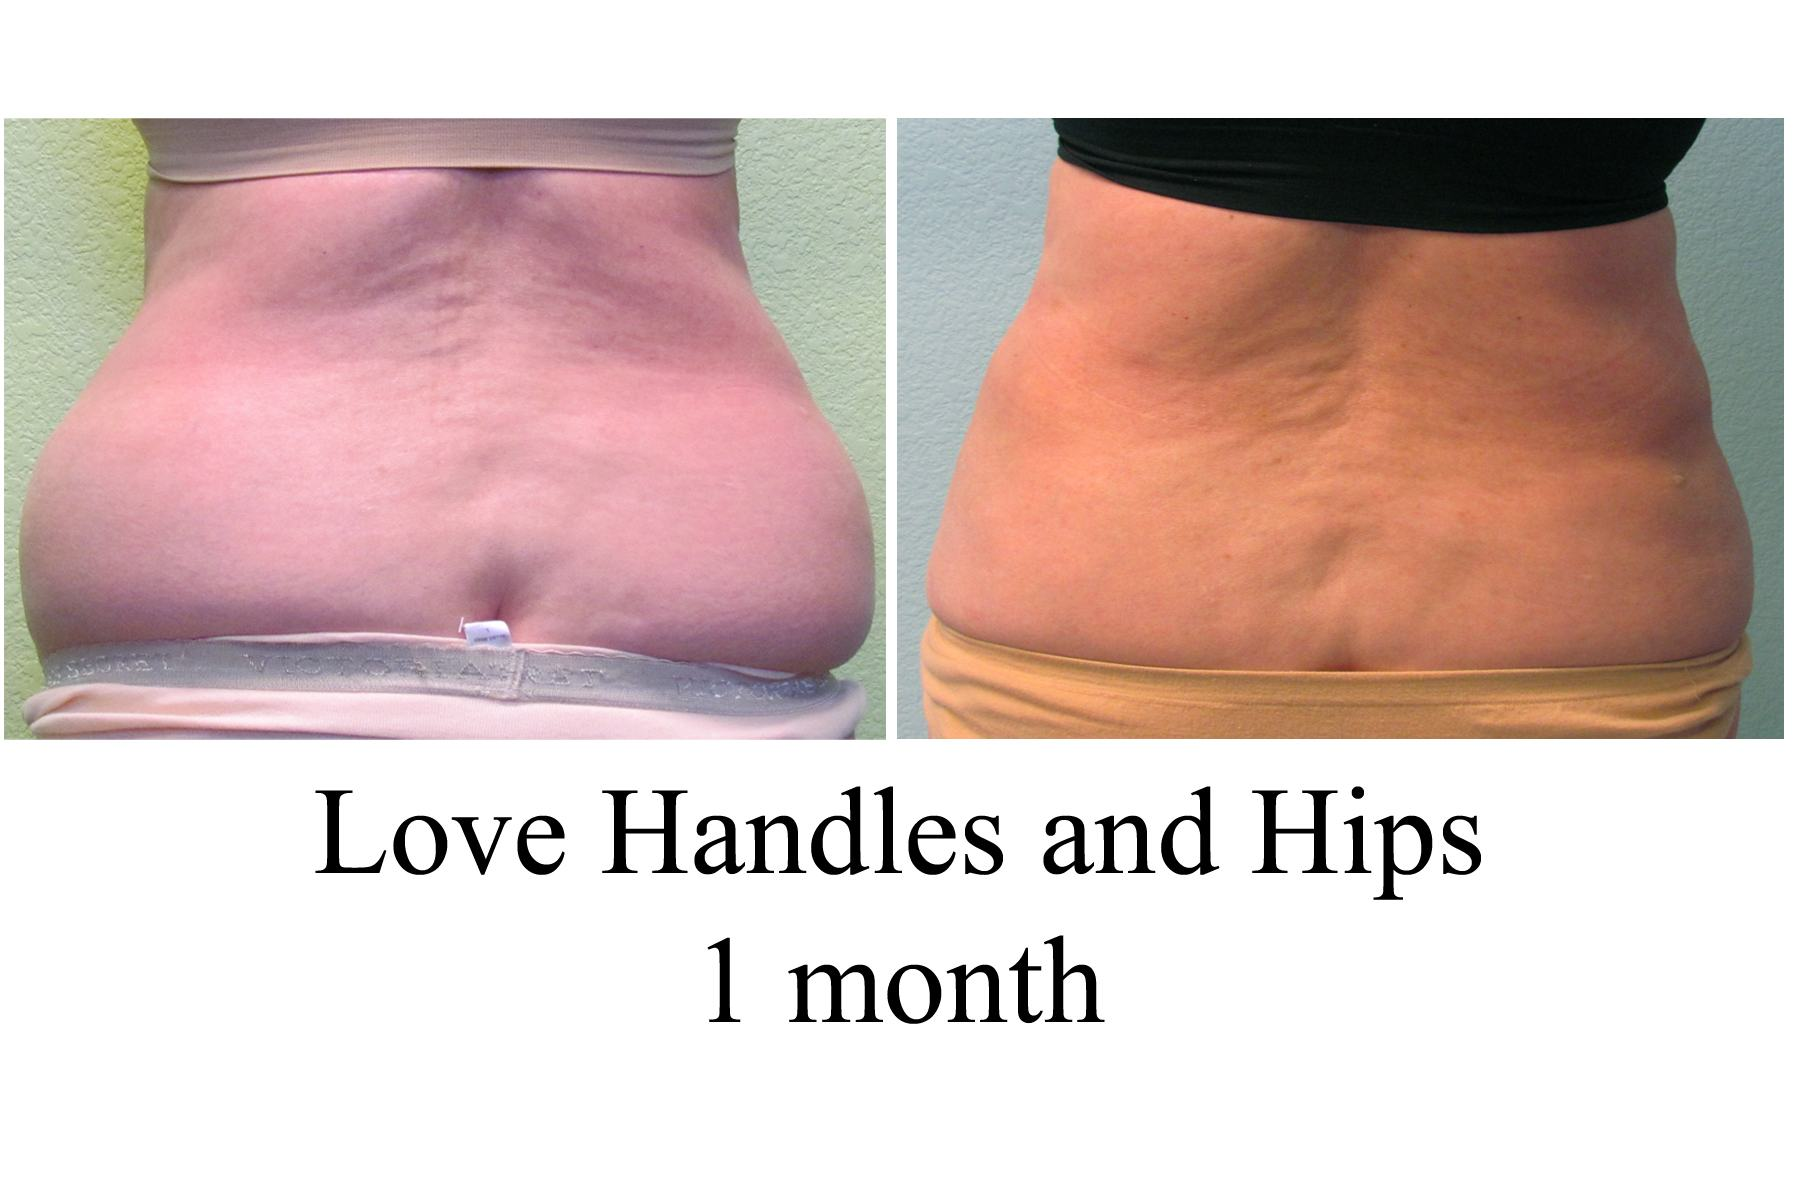 how to reduce love handles and hips